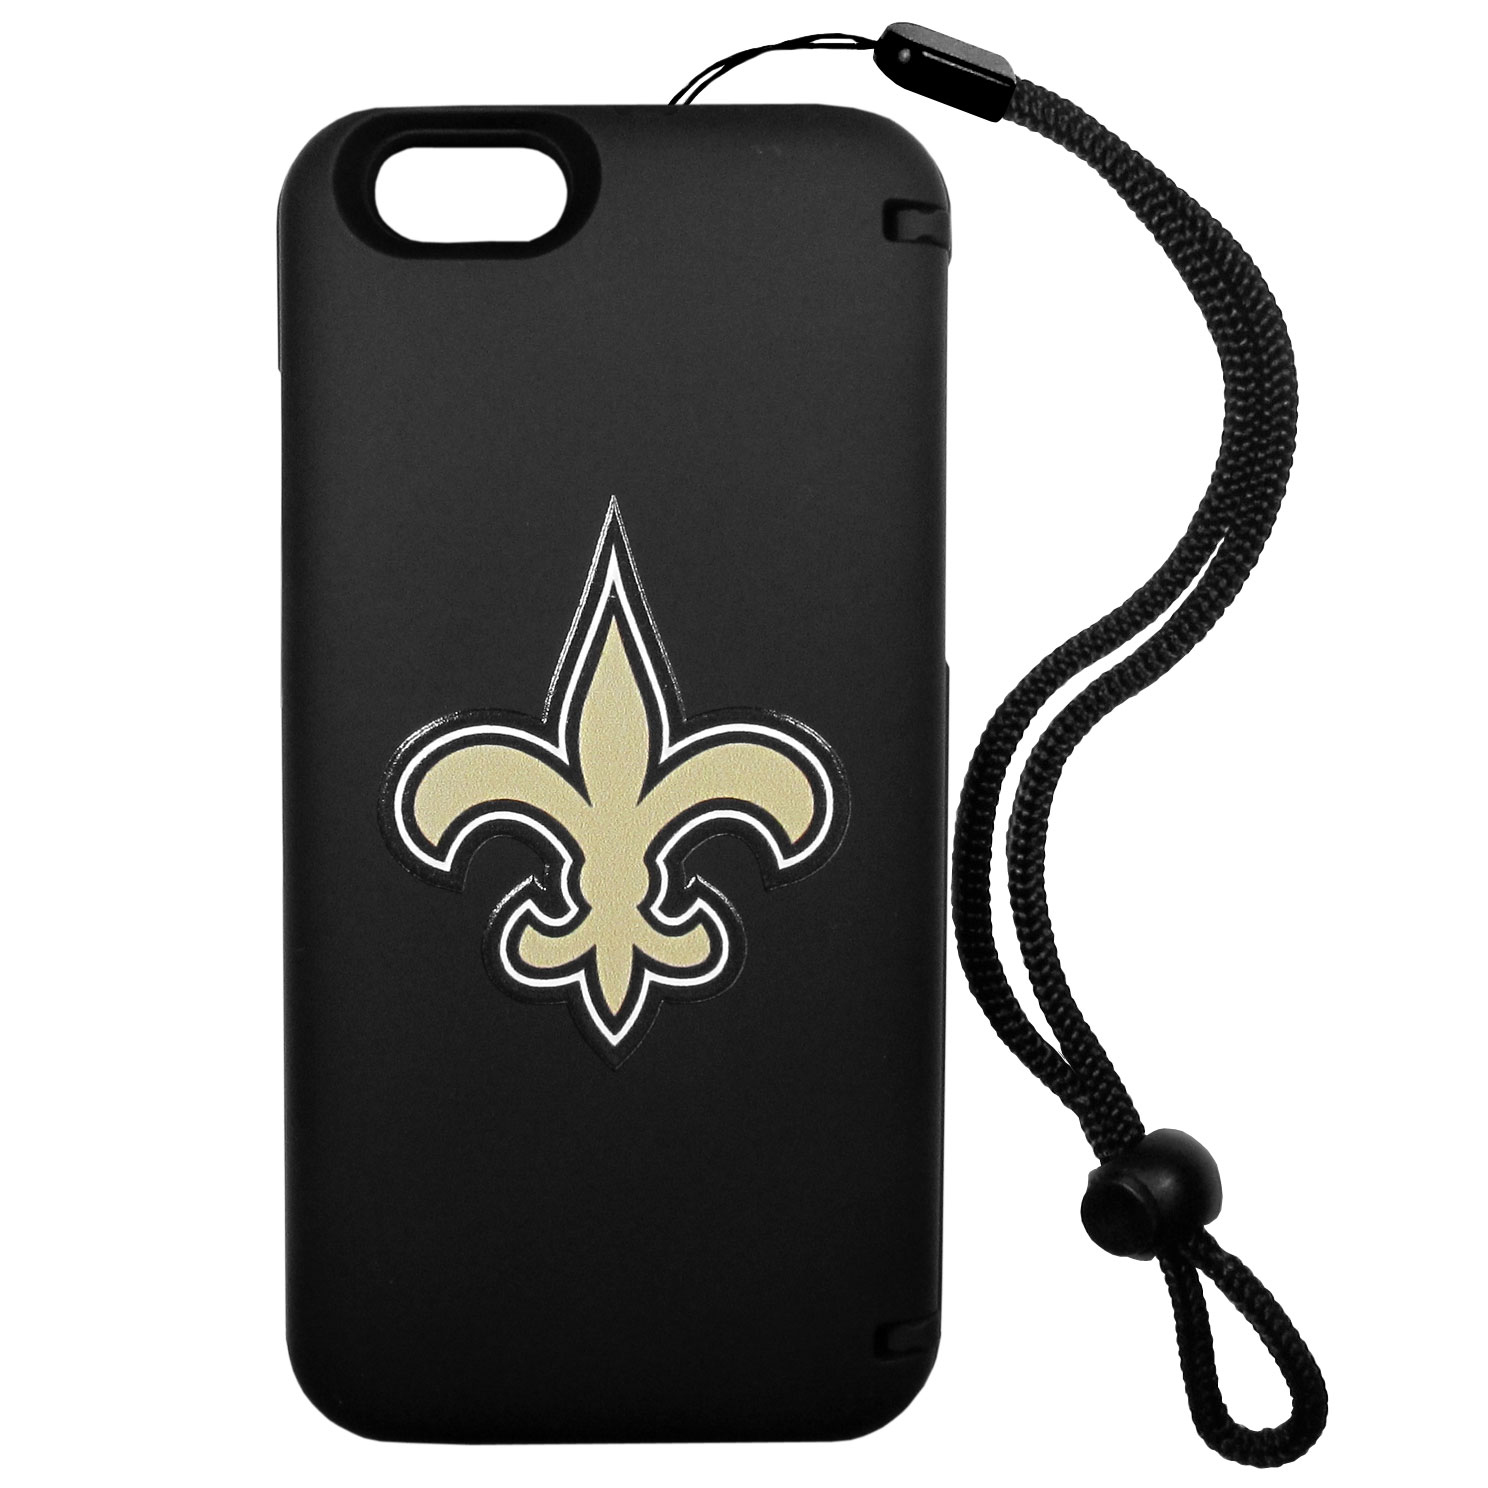 New Orleans Saints iPhone 6 Plus Everything Case - This case really does have everything but the kitchen sink! The hidden compartment lets you keep your cards, money and tickets to the big game safe and secure and has a compact mirror so you can make sure your game face is ready to go. It also comes with a kickstand to make chatting and watching videos a breeze. The wrist strap allows you to travel with ease with your everything case. If that's not enough, it also comes with the New Orleans Saints logo printed in expert detail on the front.